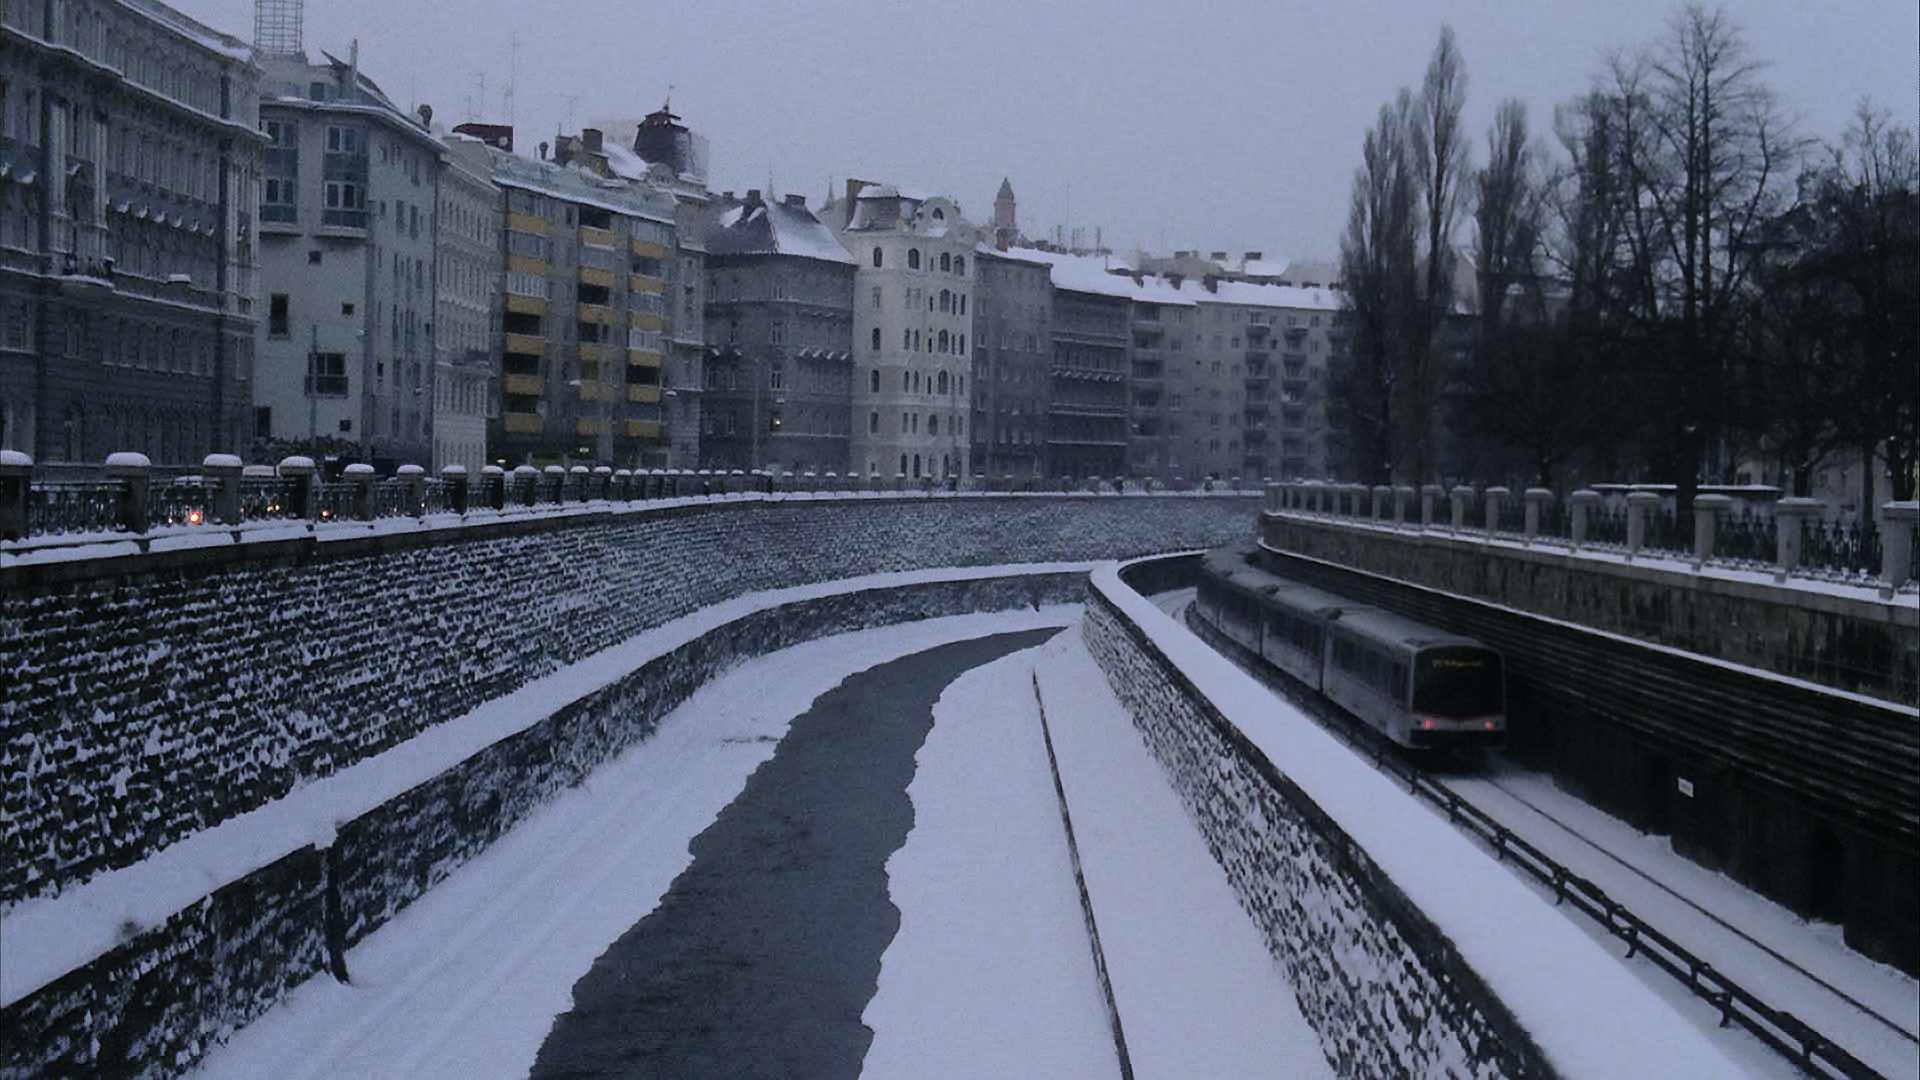 Vienna train tracks in the snow